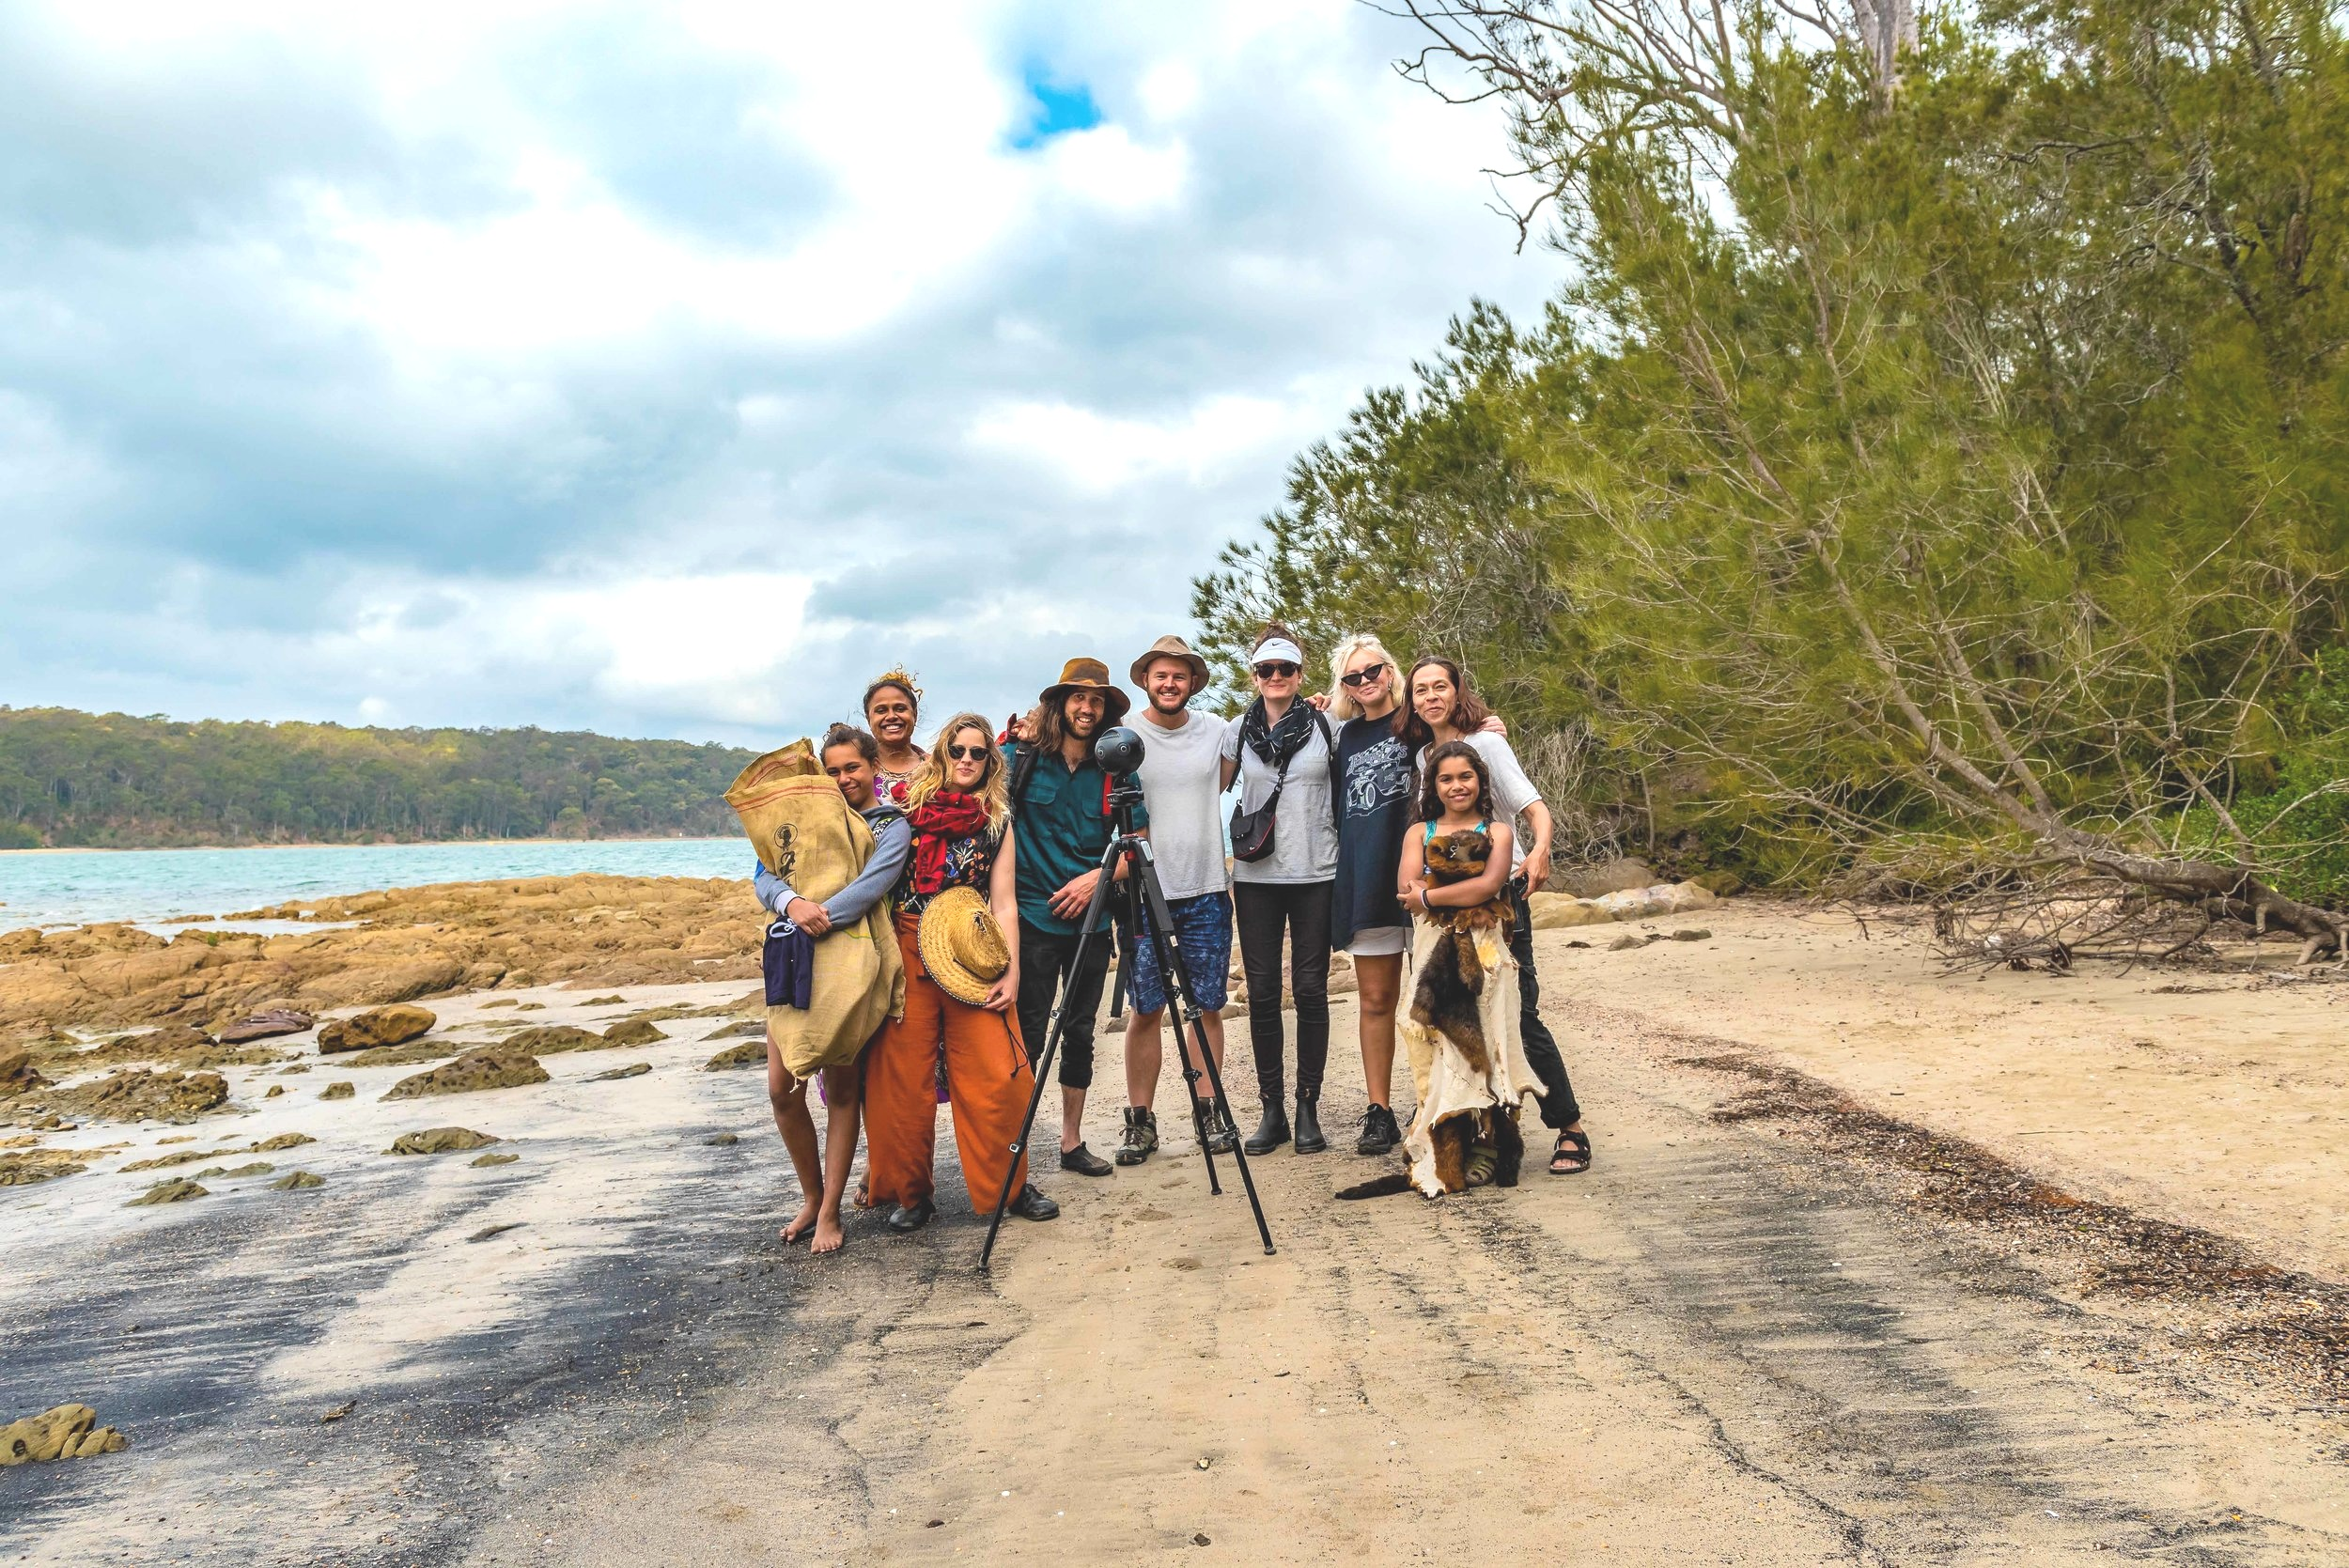 Some of our awesome crew and cast: Nyarru, our Assistant Director Noni Eather, Director Katrina Channells, Photographer Rhett Wyman, Cinematographer Michael Beets, Producer Bridget O'Shea, Production Assistant Bree Wild, Storyteller Vikki Parsley, Bimi.